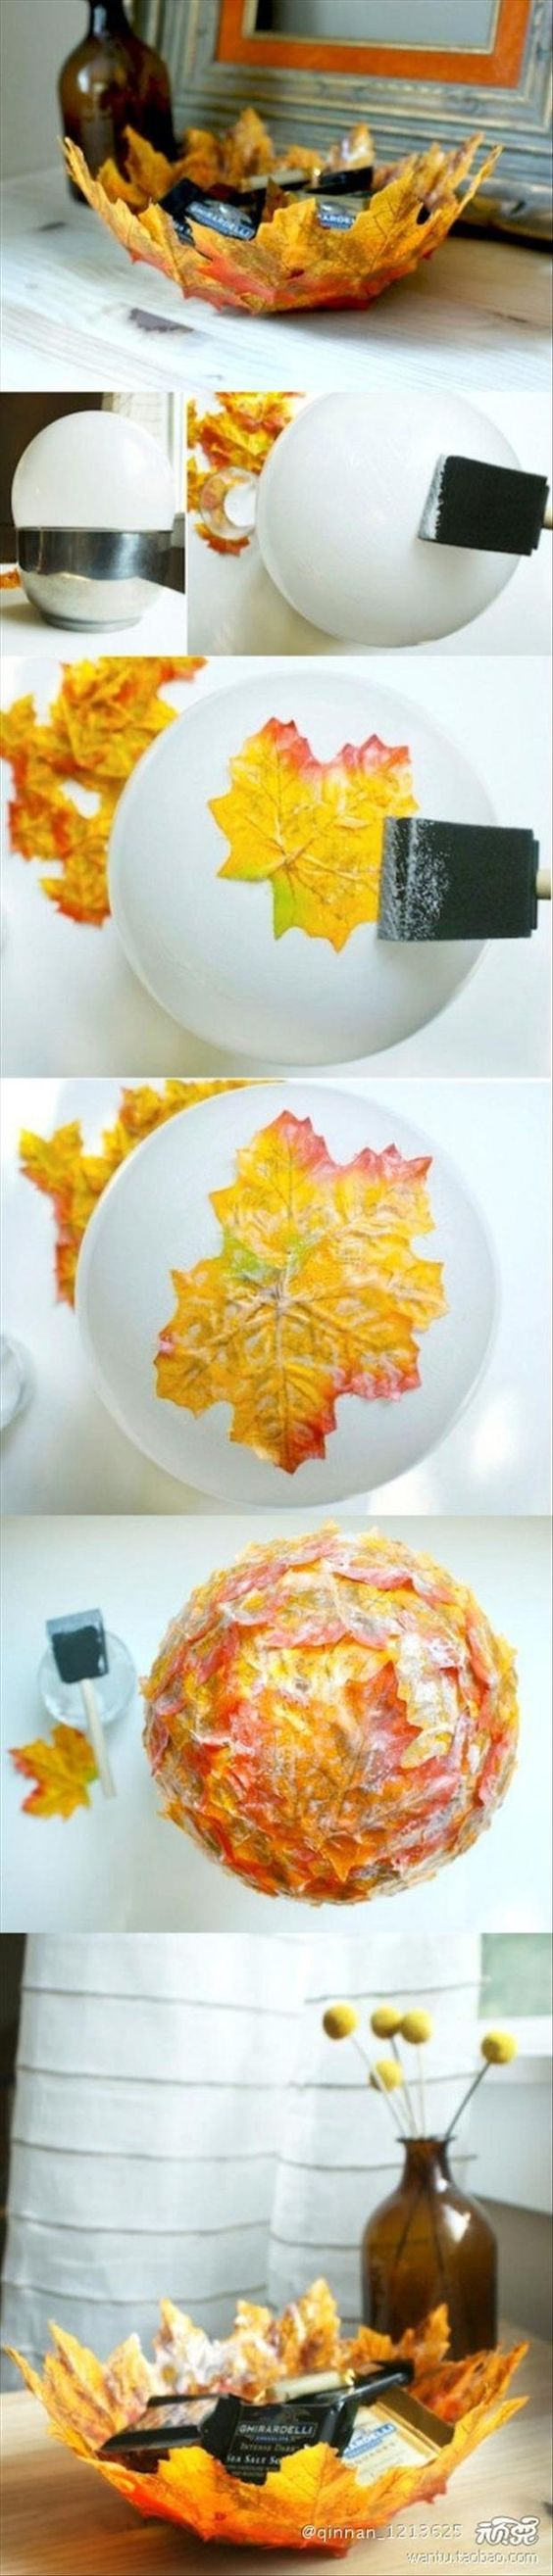 how to make a leaf bowl do it yourself craft ideas: